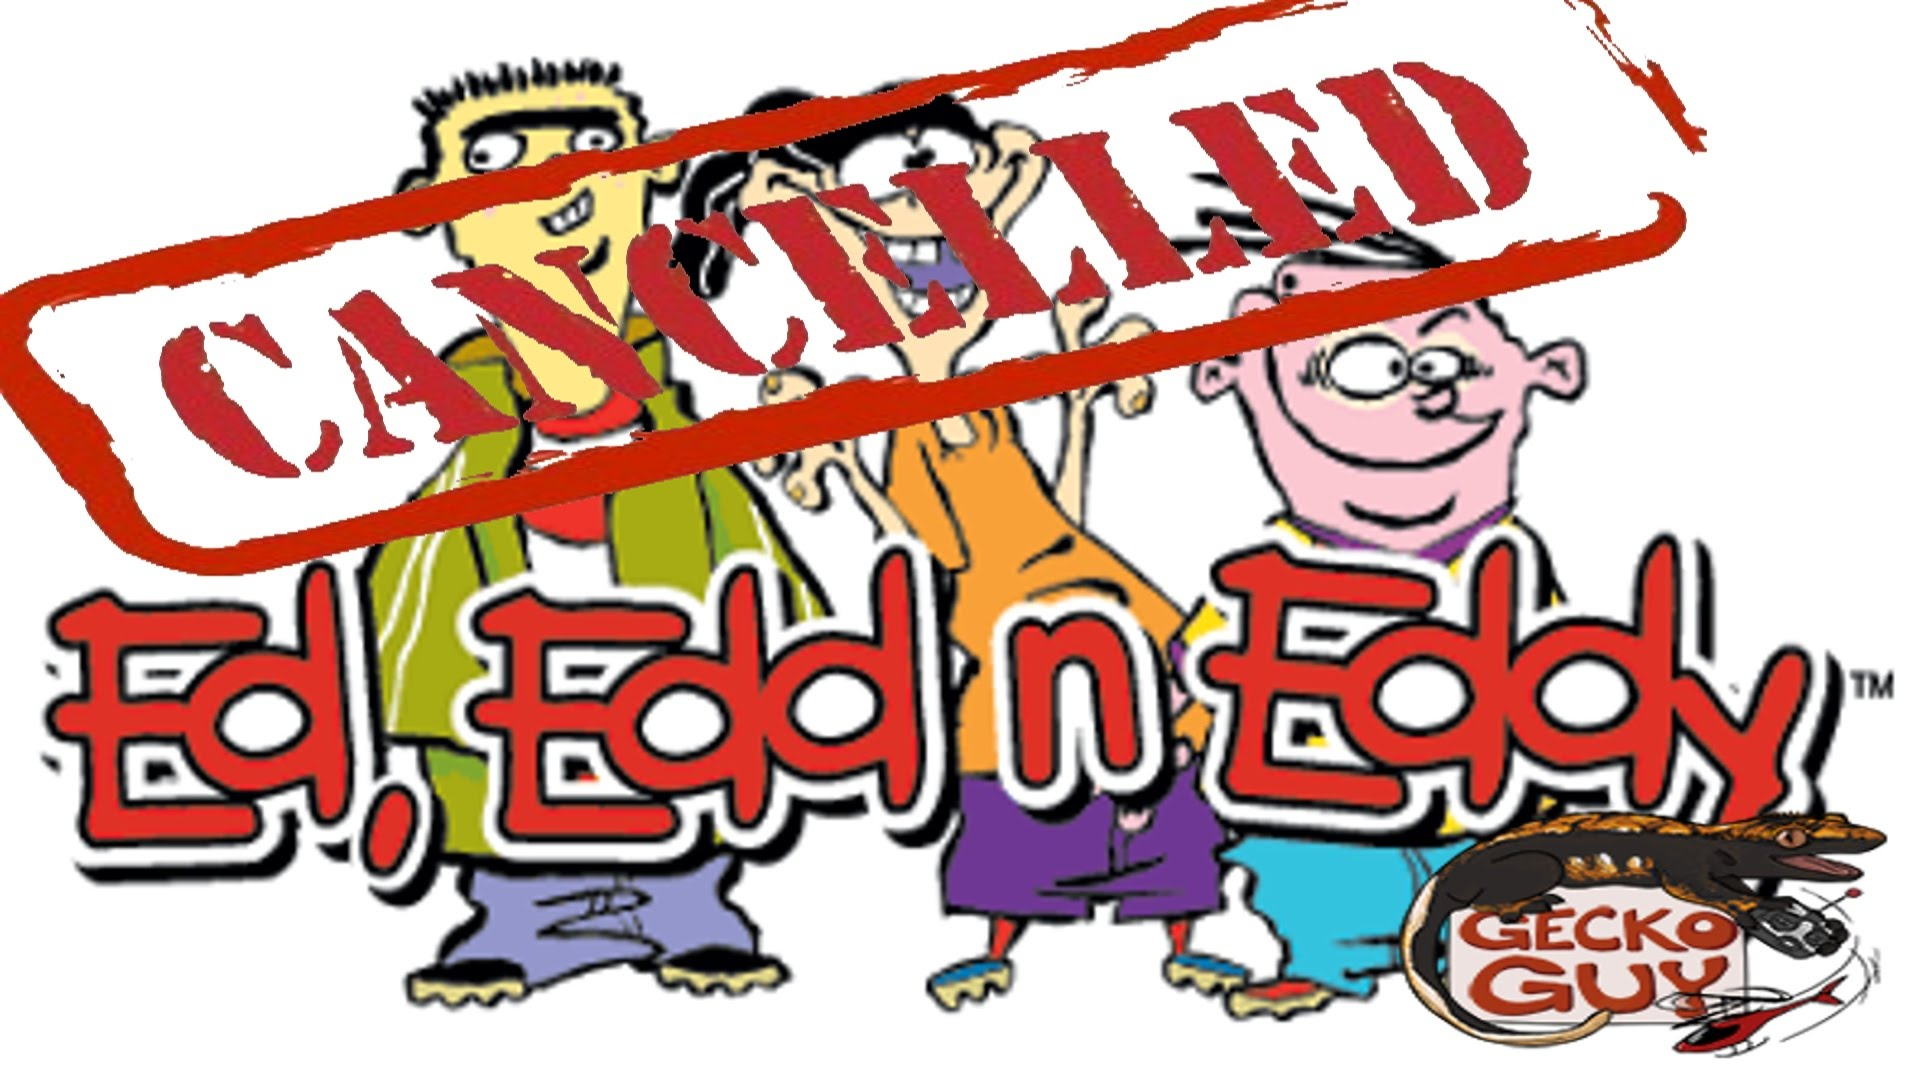 Ed Edd Eddy Wallpapers Cartoon Hq Ed Edd Eddy Pictures 4k